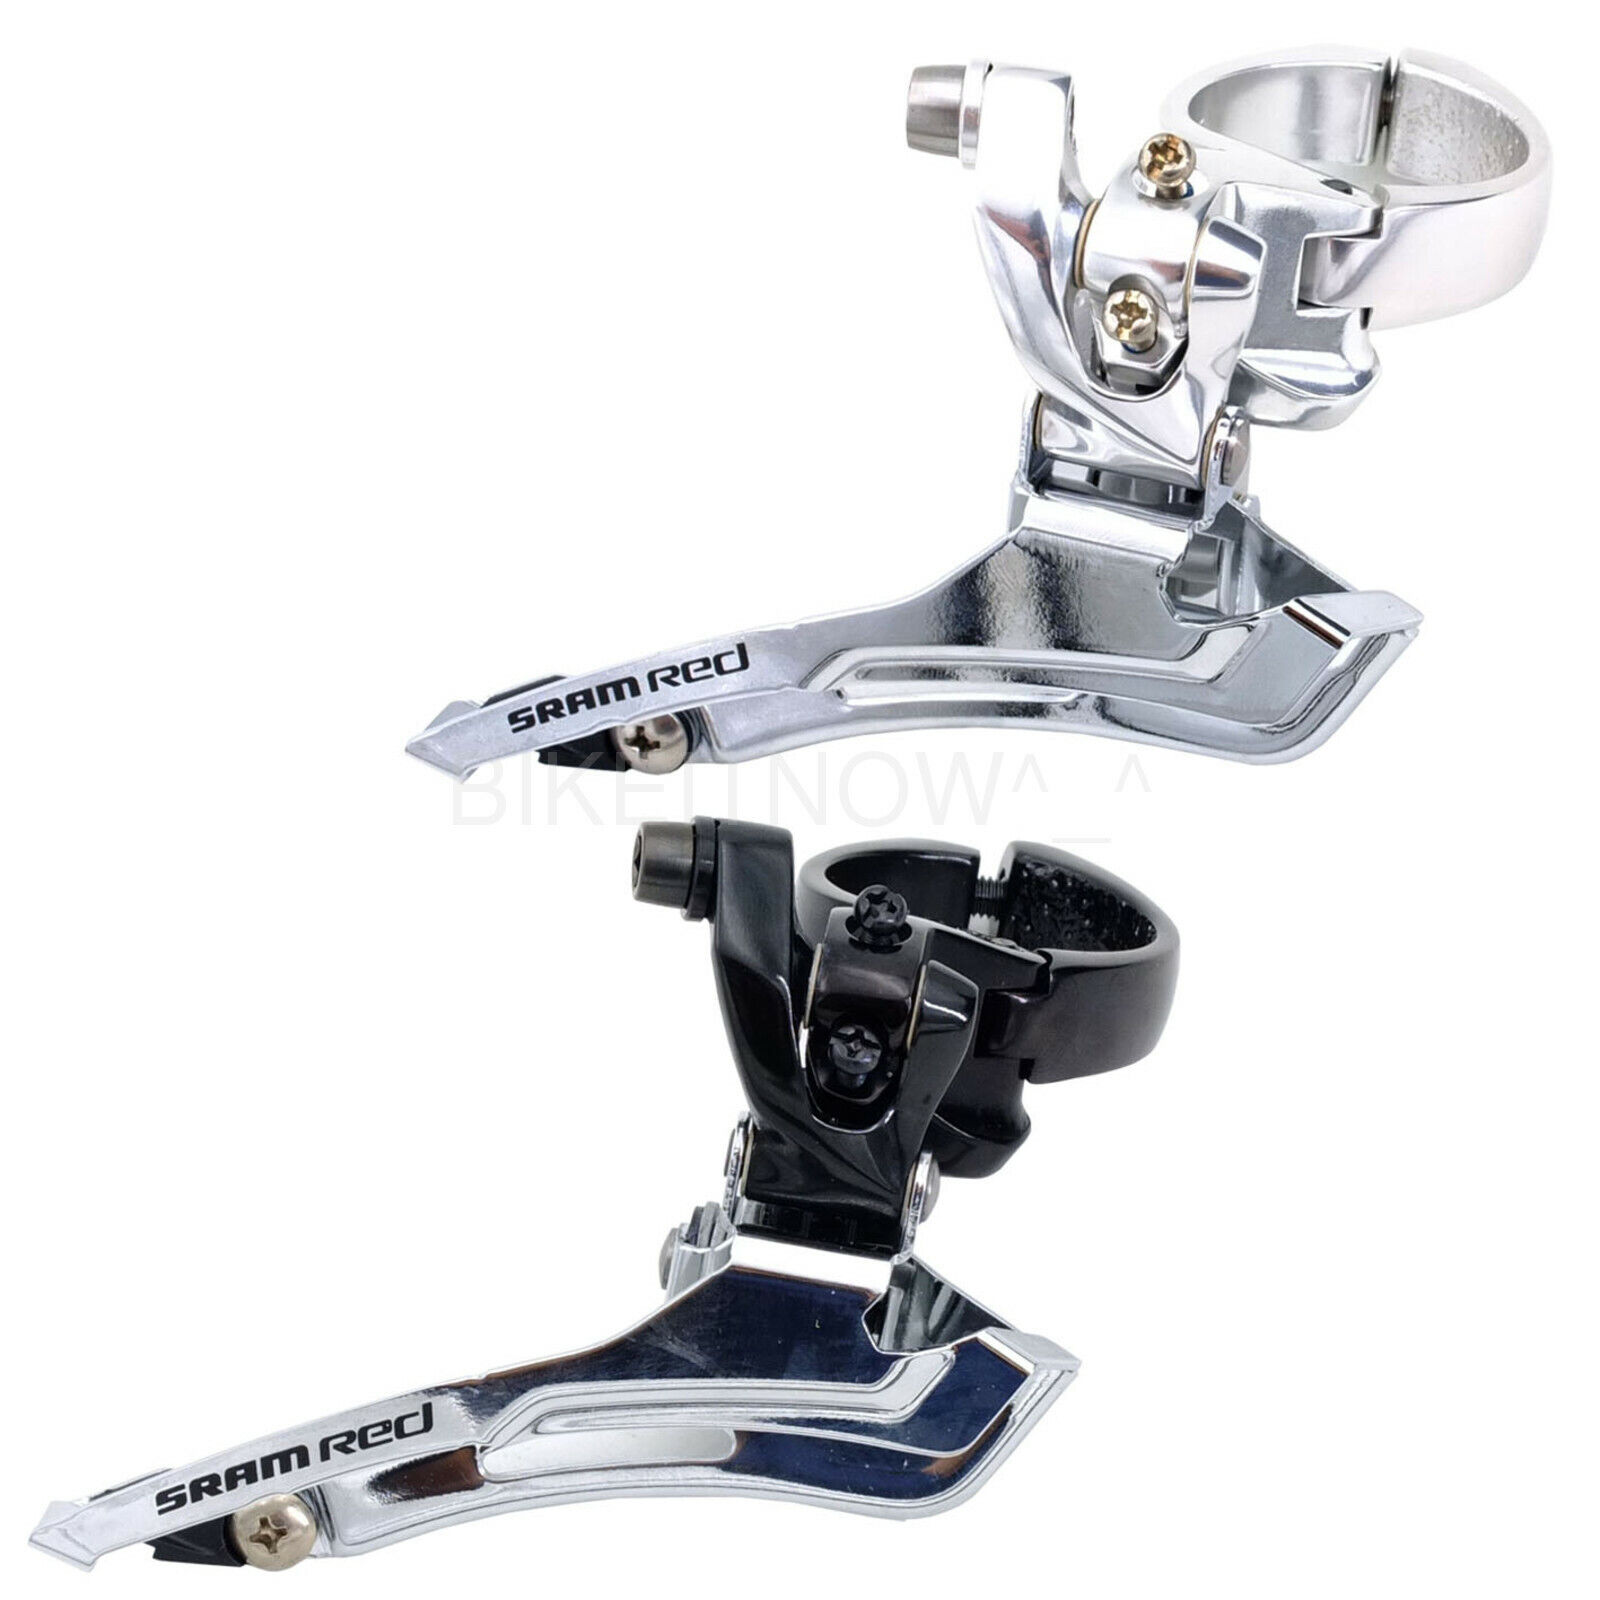 SRAM Red Front Derailleur 2x10 Speed Clamp On  34.9 fit Shimano Campy Road Bike  online discount